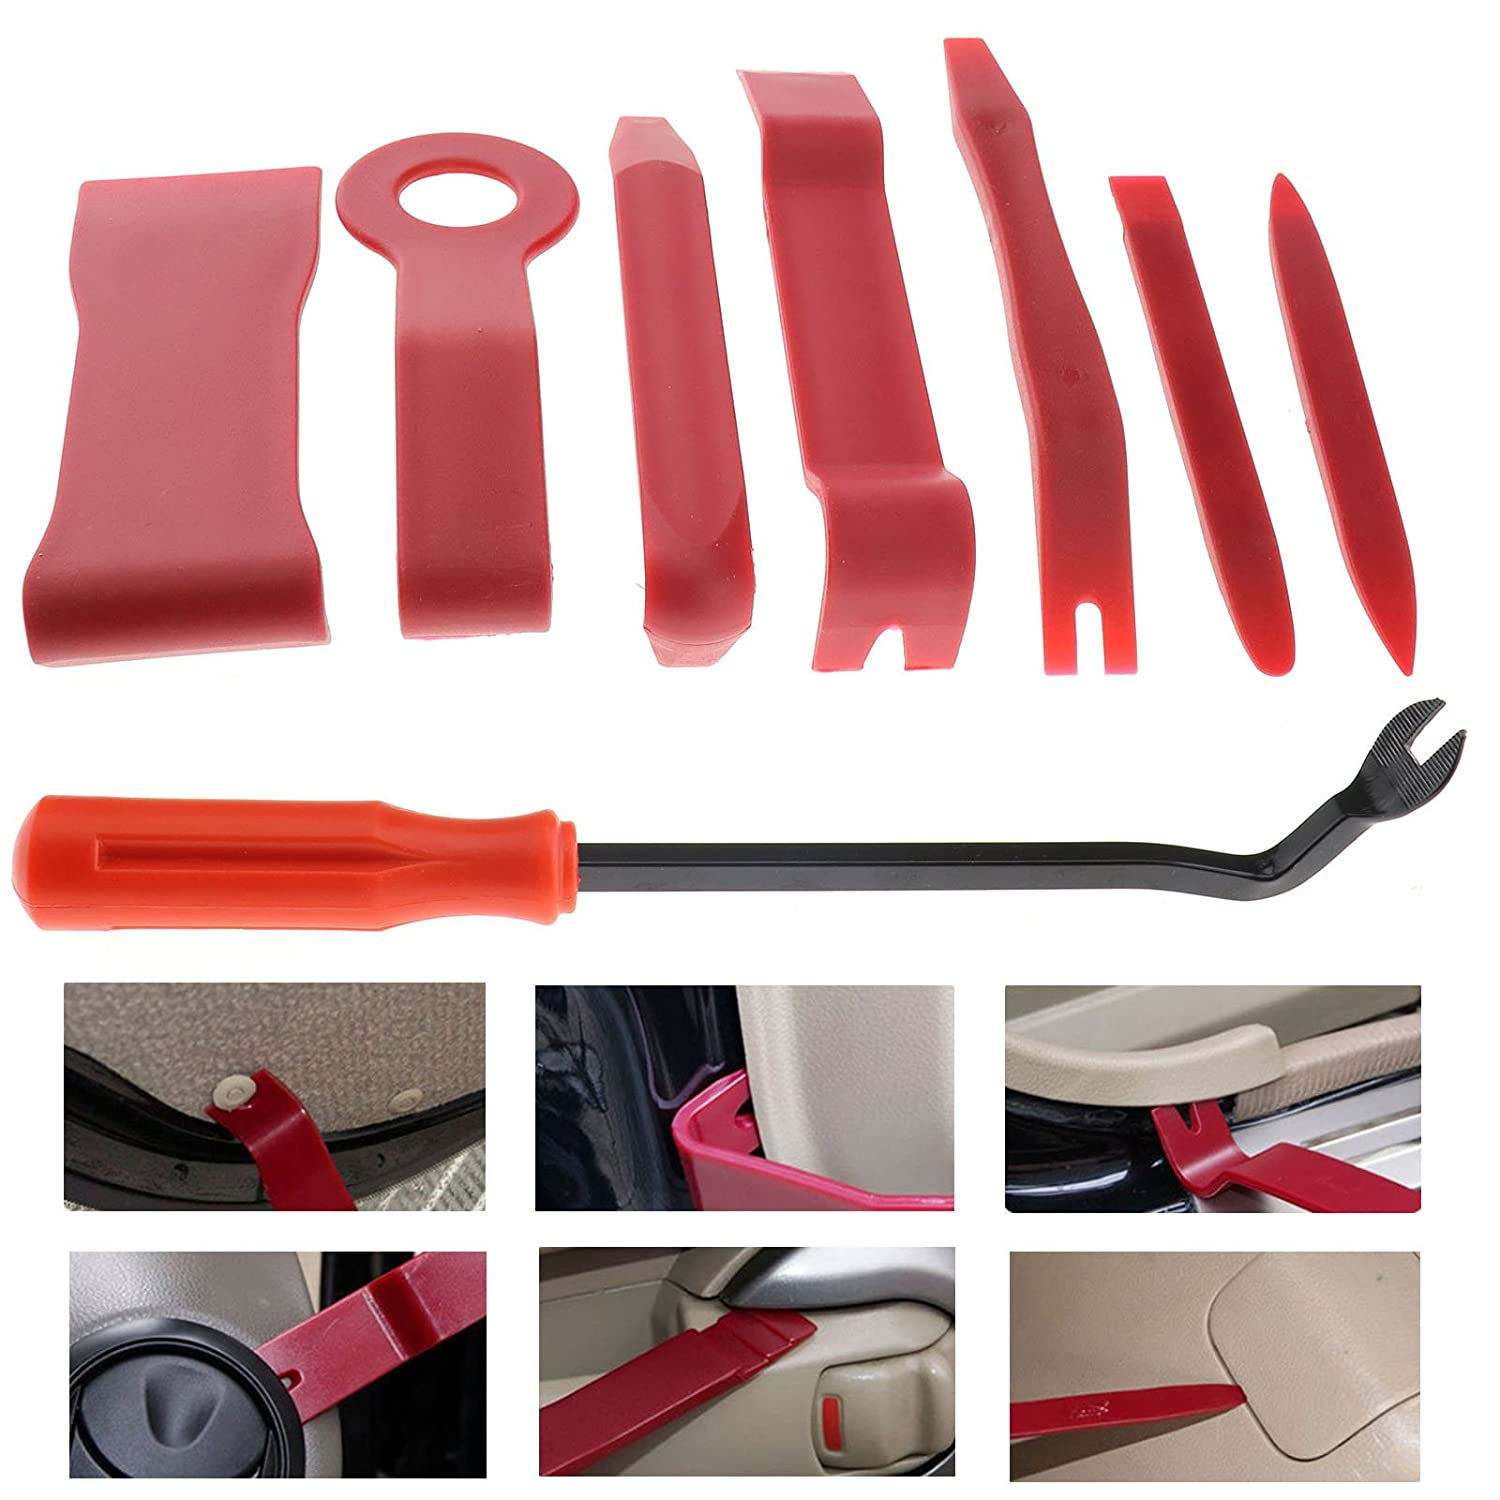 Micro Trader Trim Removal Tool 8 Pack Car Auto Door Panel Remove Tool Kit Strong Nylon Pry Tools